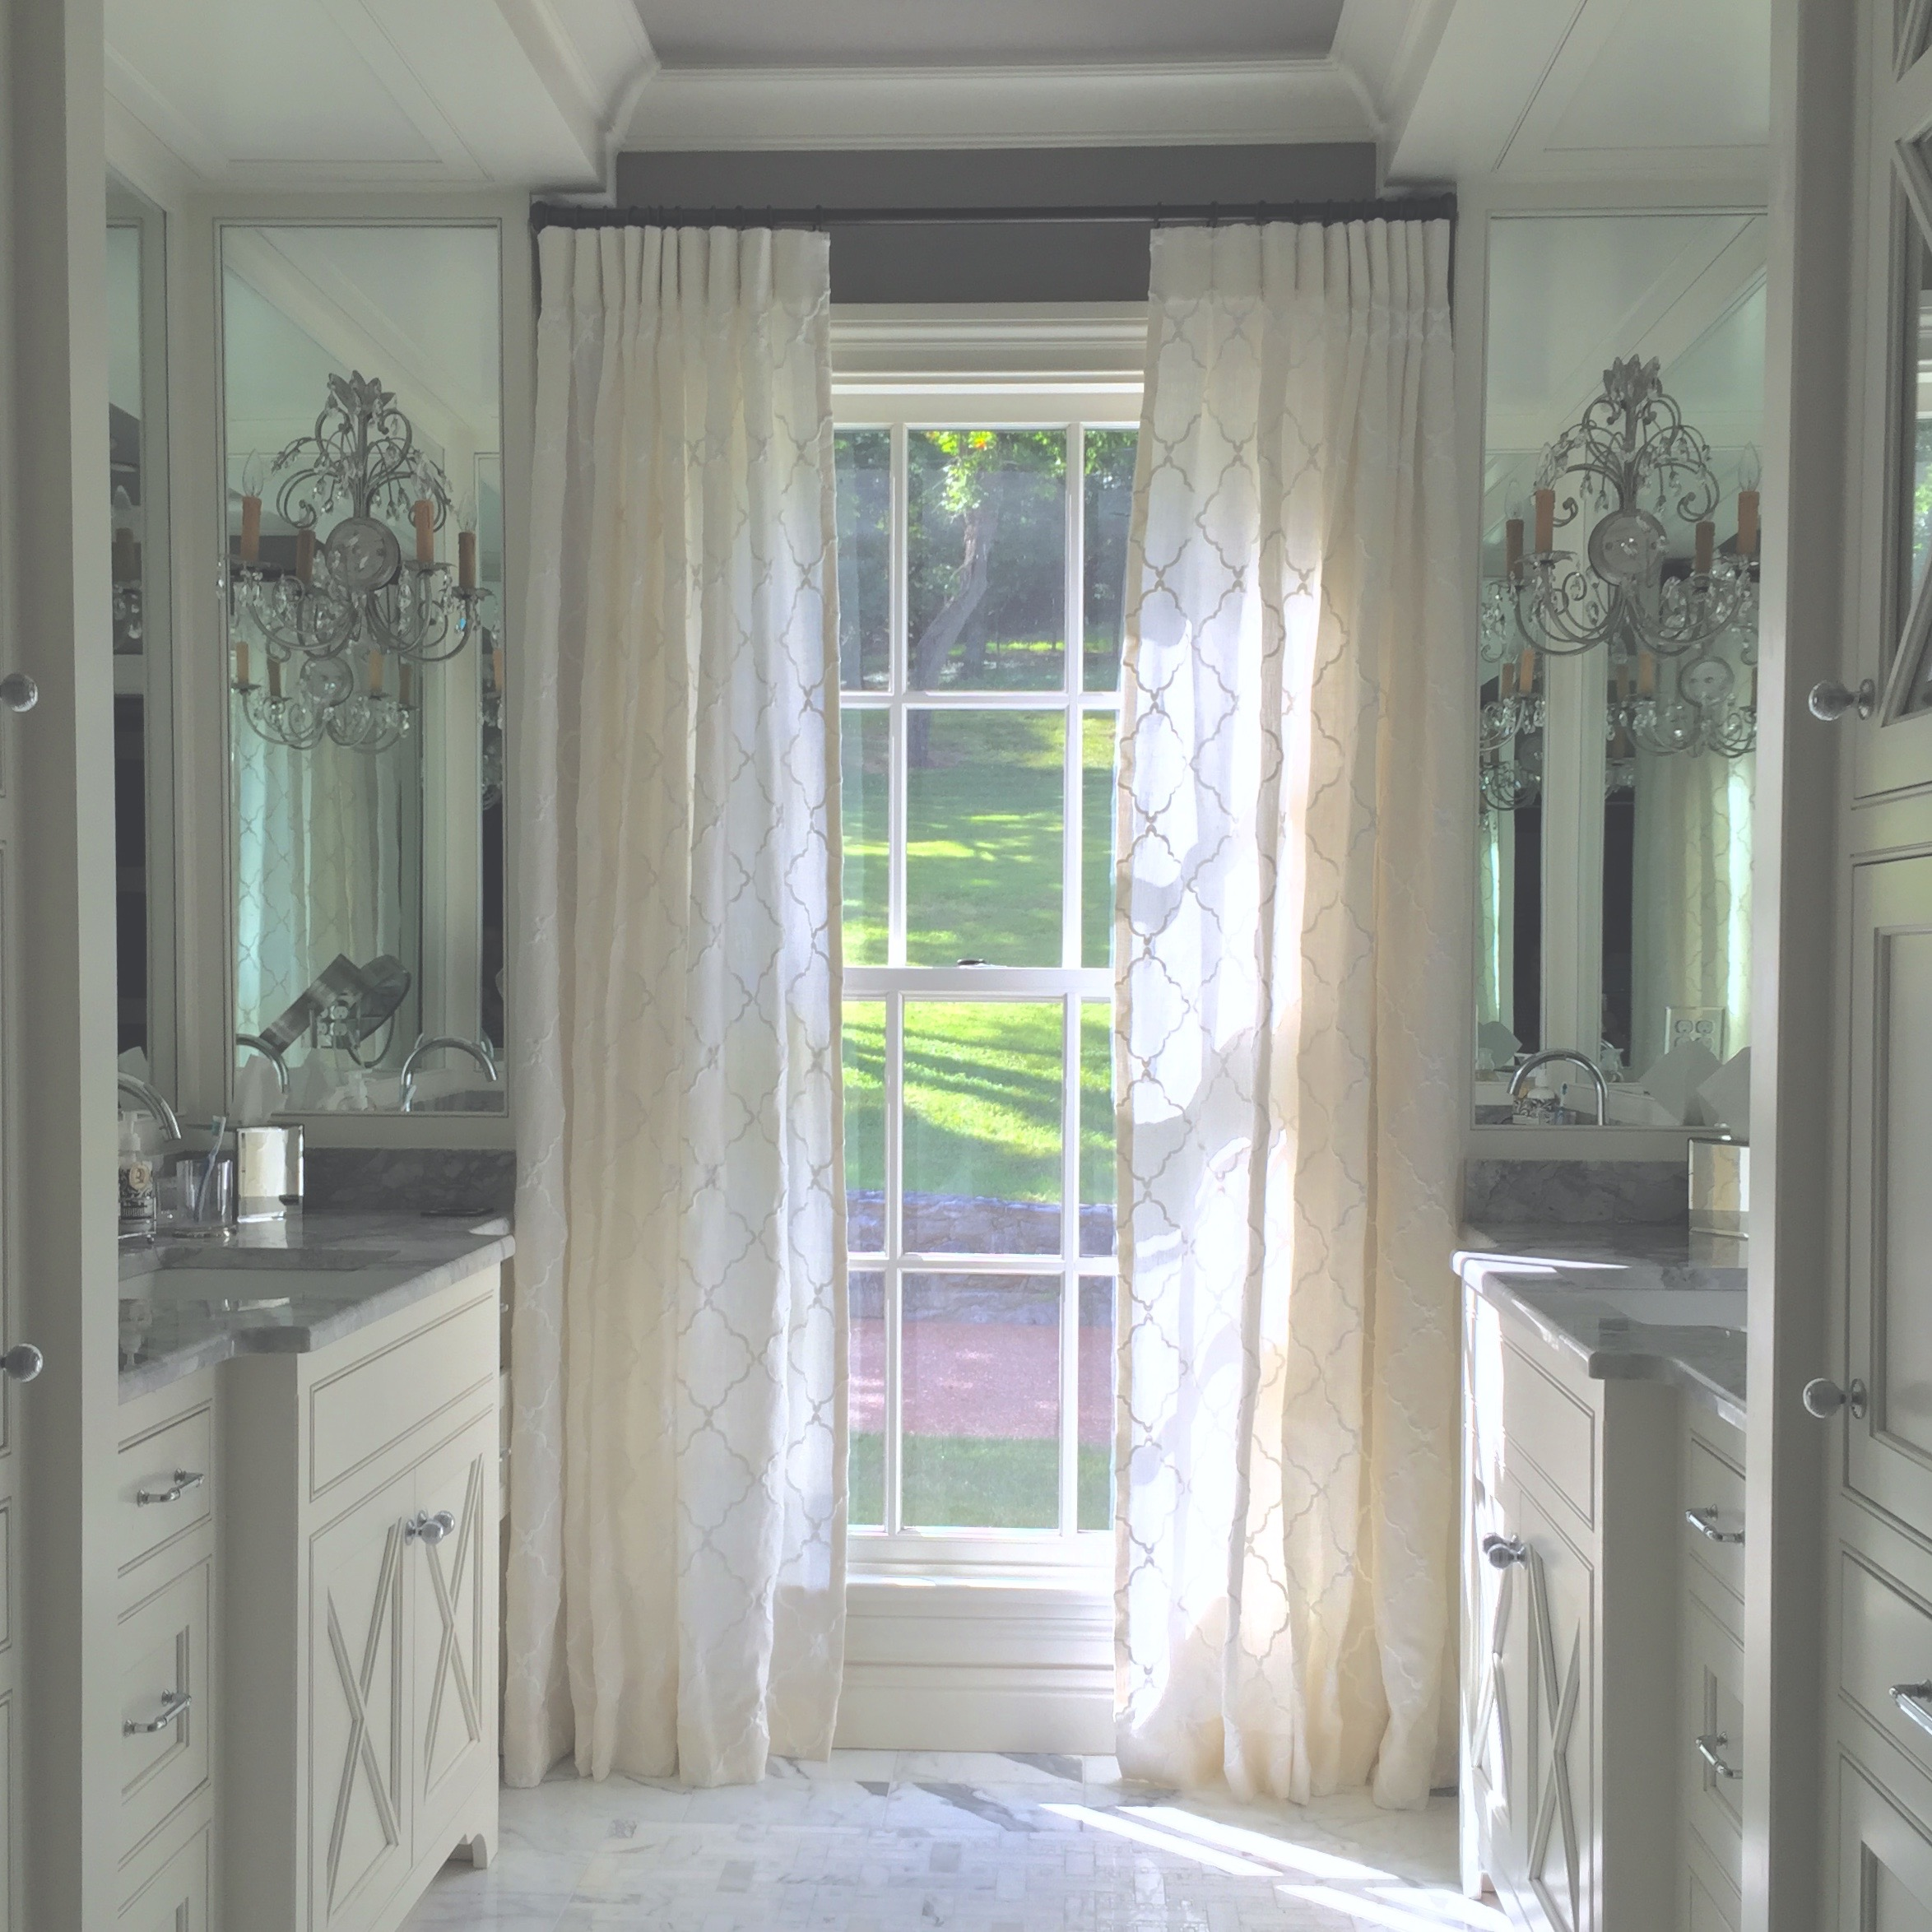 Linen Sheer Curtains, Designer, Workroom & Photo: Camille Moore Interiors